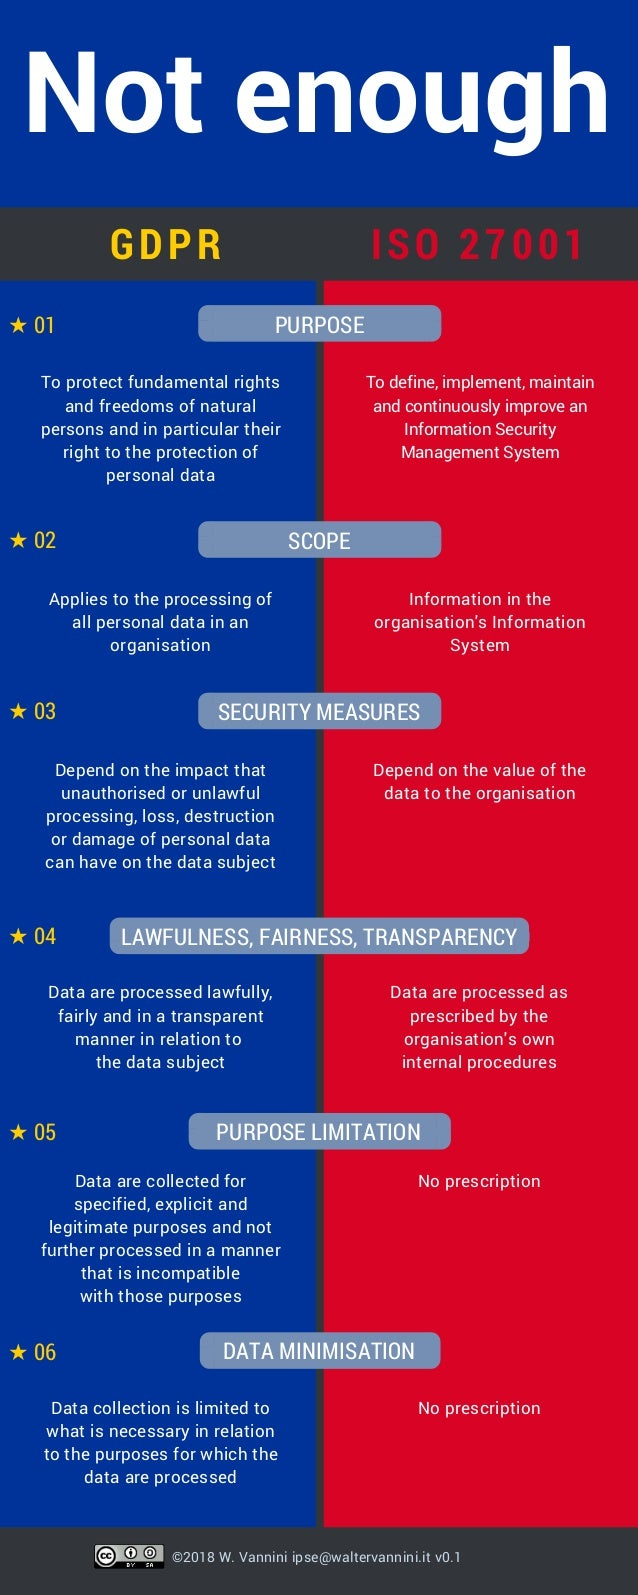 difference between iso 27001 and gdpr